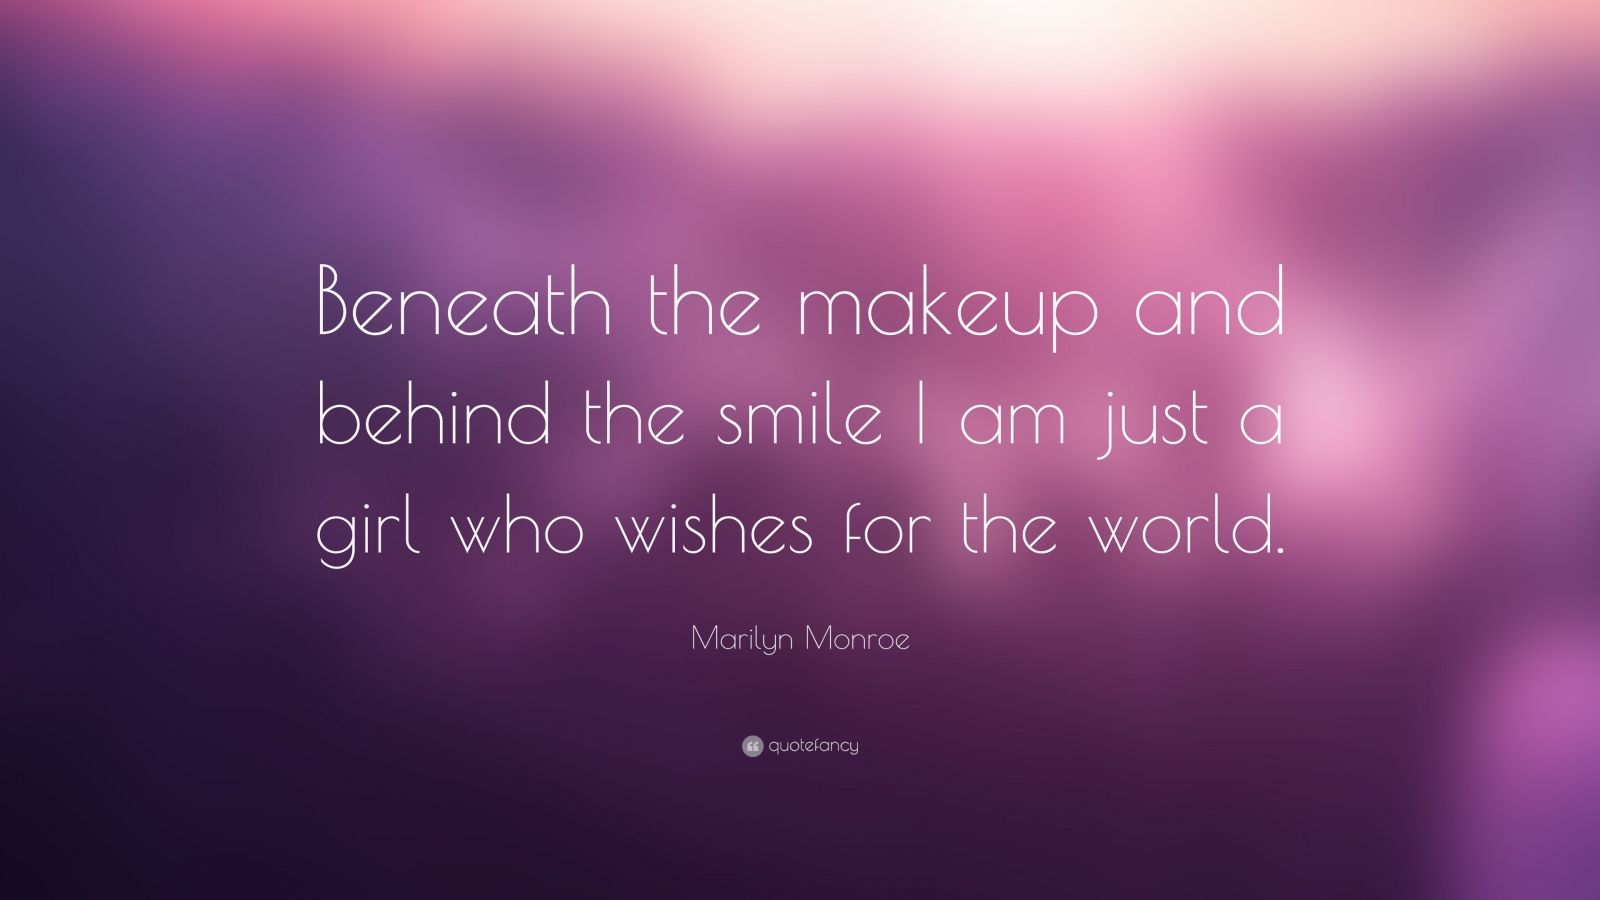 Marilyn Monroe Beneath The Makeup Quote: Marilyn Monroe Quotes (20 Wallpapers)